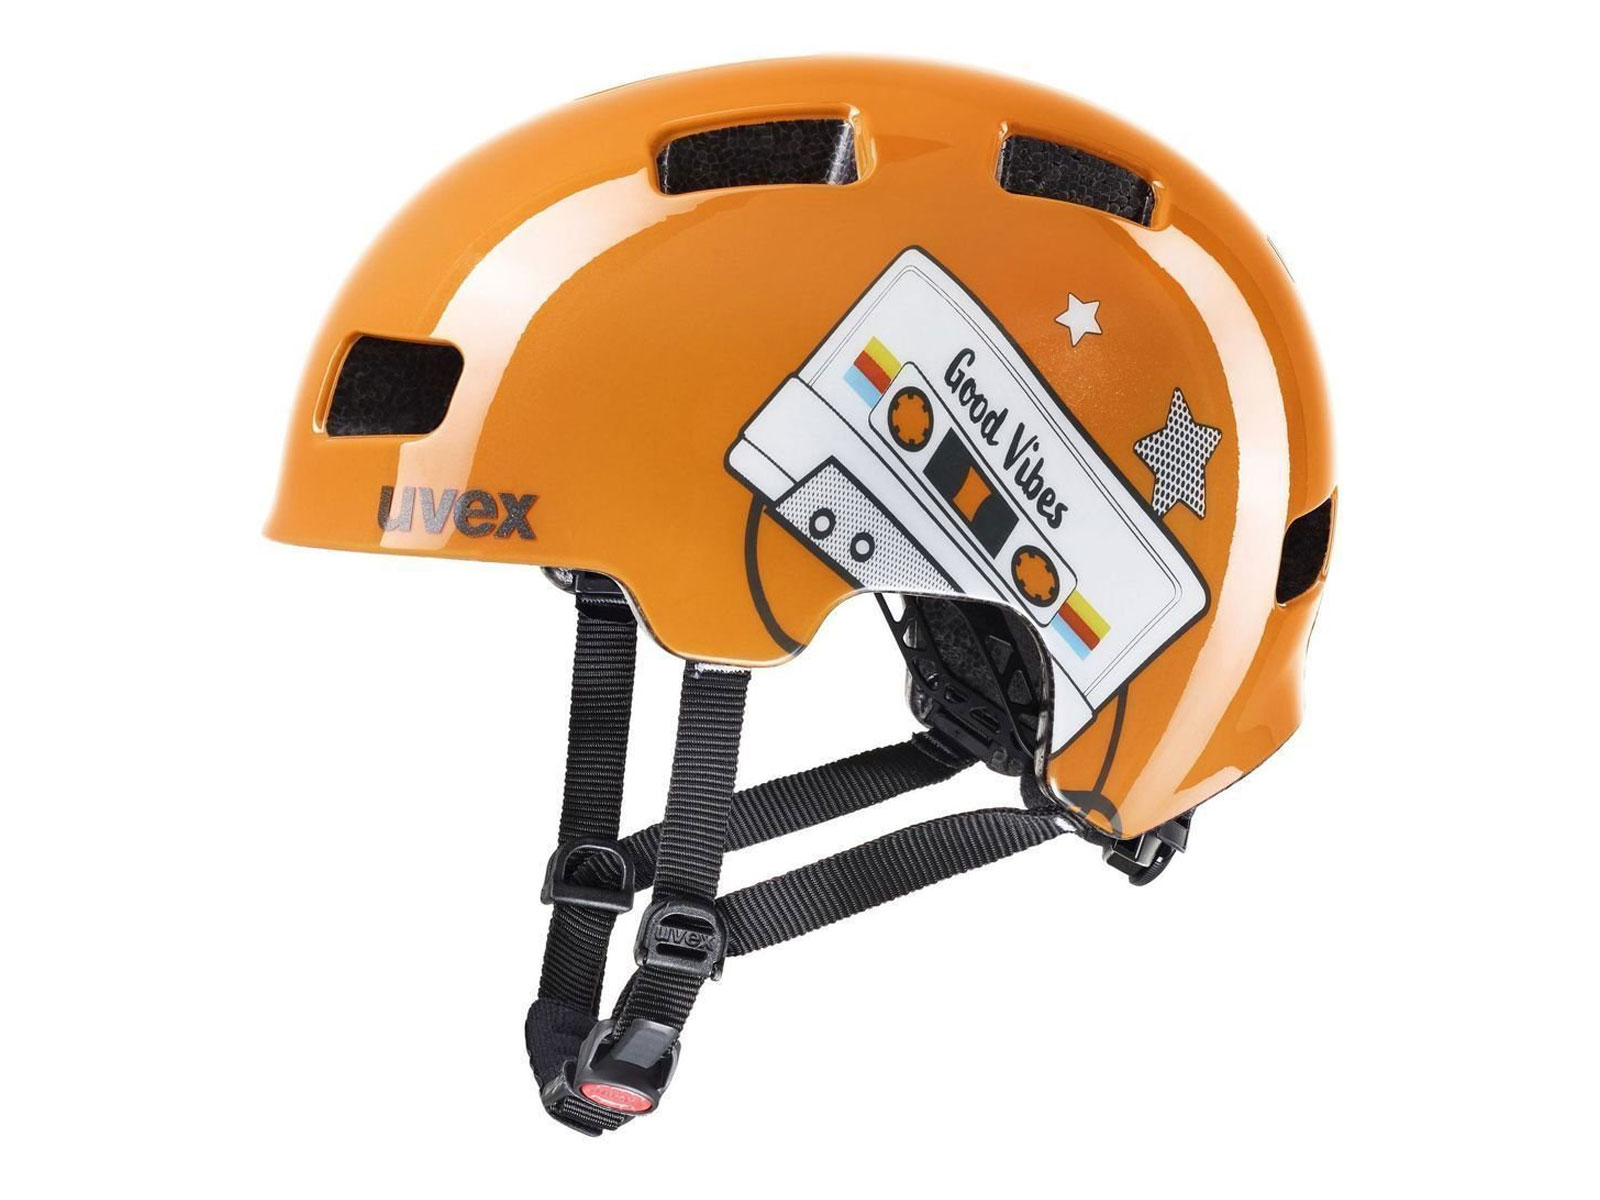 Κράνος Uvex Hlmt 4 - Orange Tape (51-55cm)